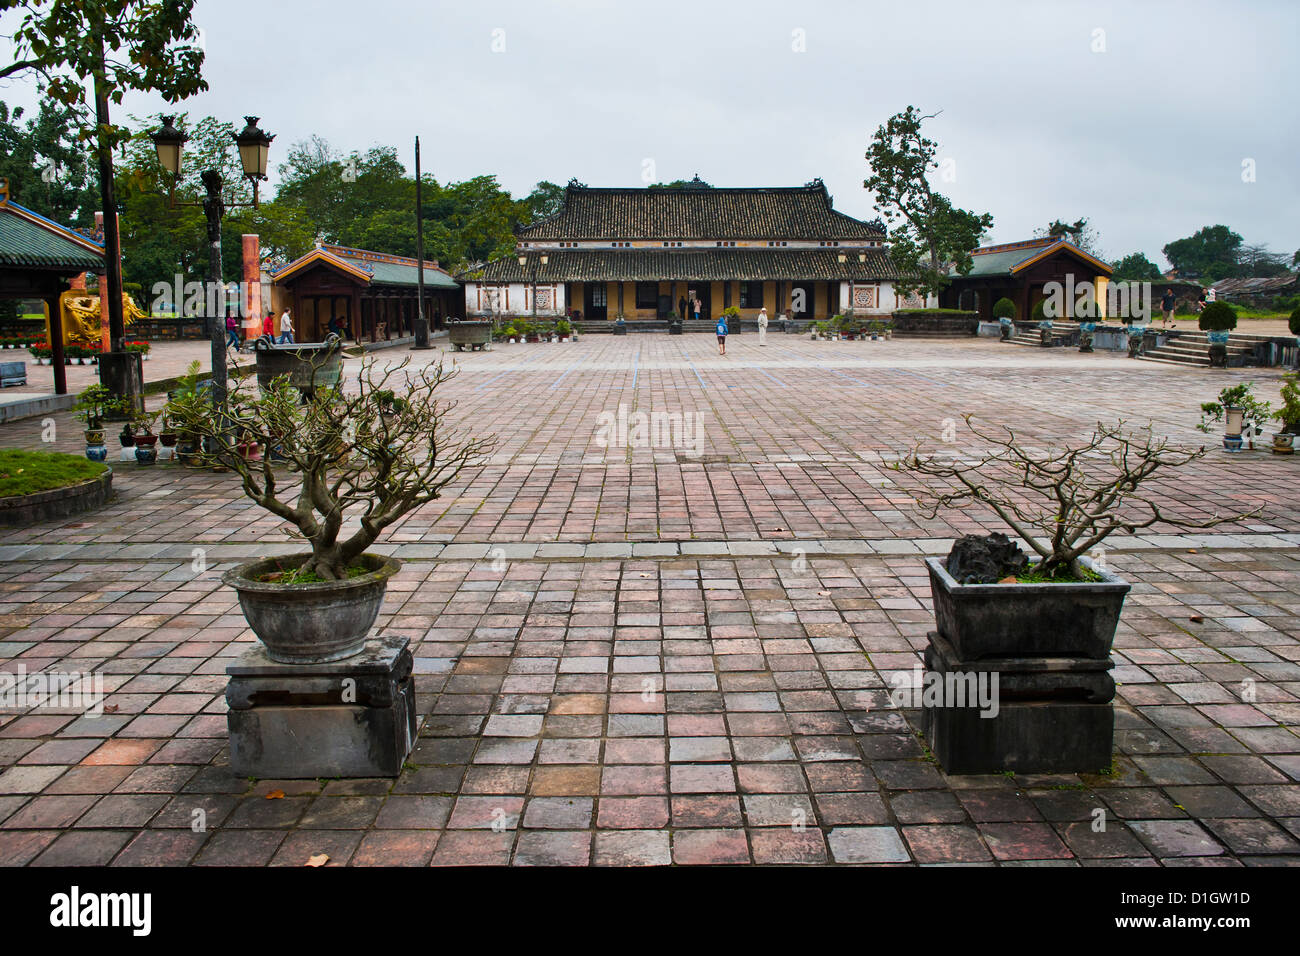 Old building in Hue Citadel, The Imperial City, Hue, UNESCO World Heritage Site, Vietnam, Indochina, Southeast Asia, - Stock Image